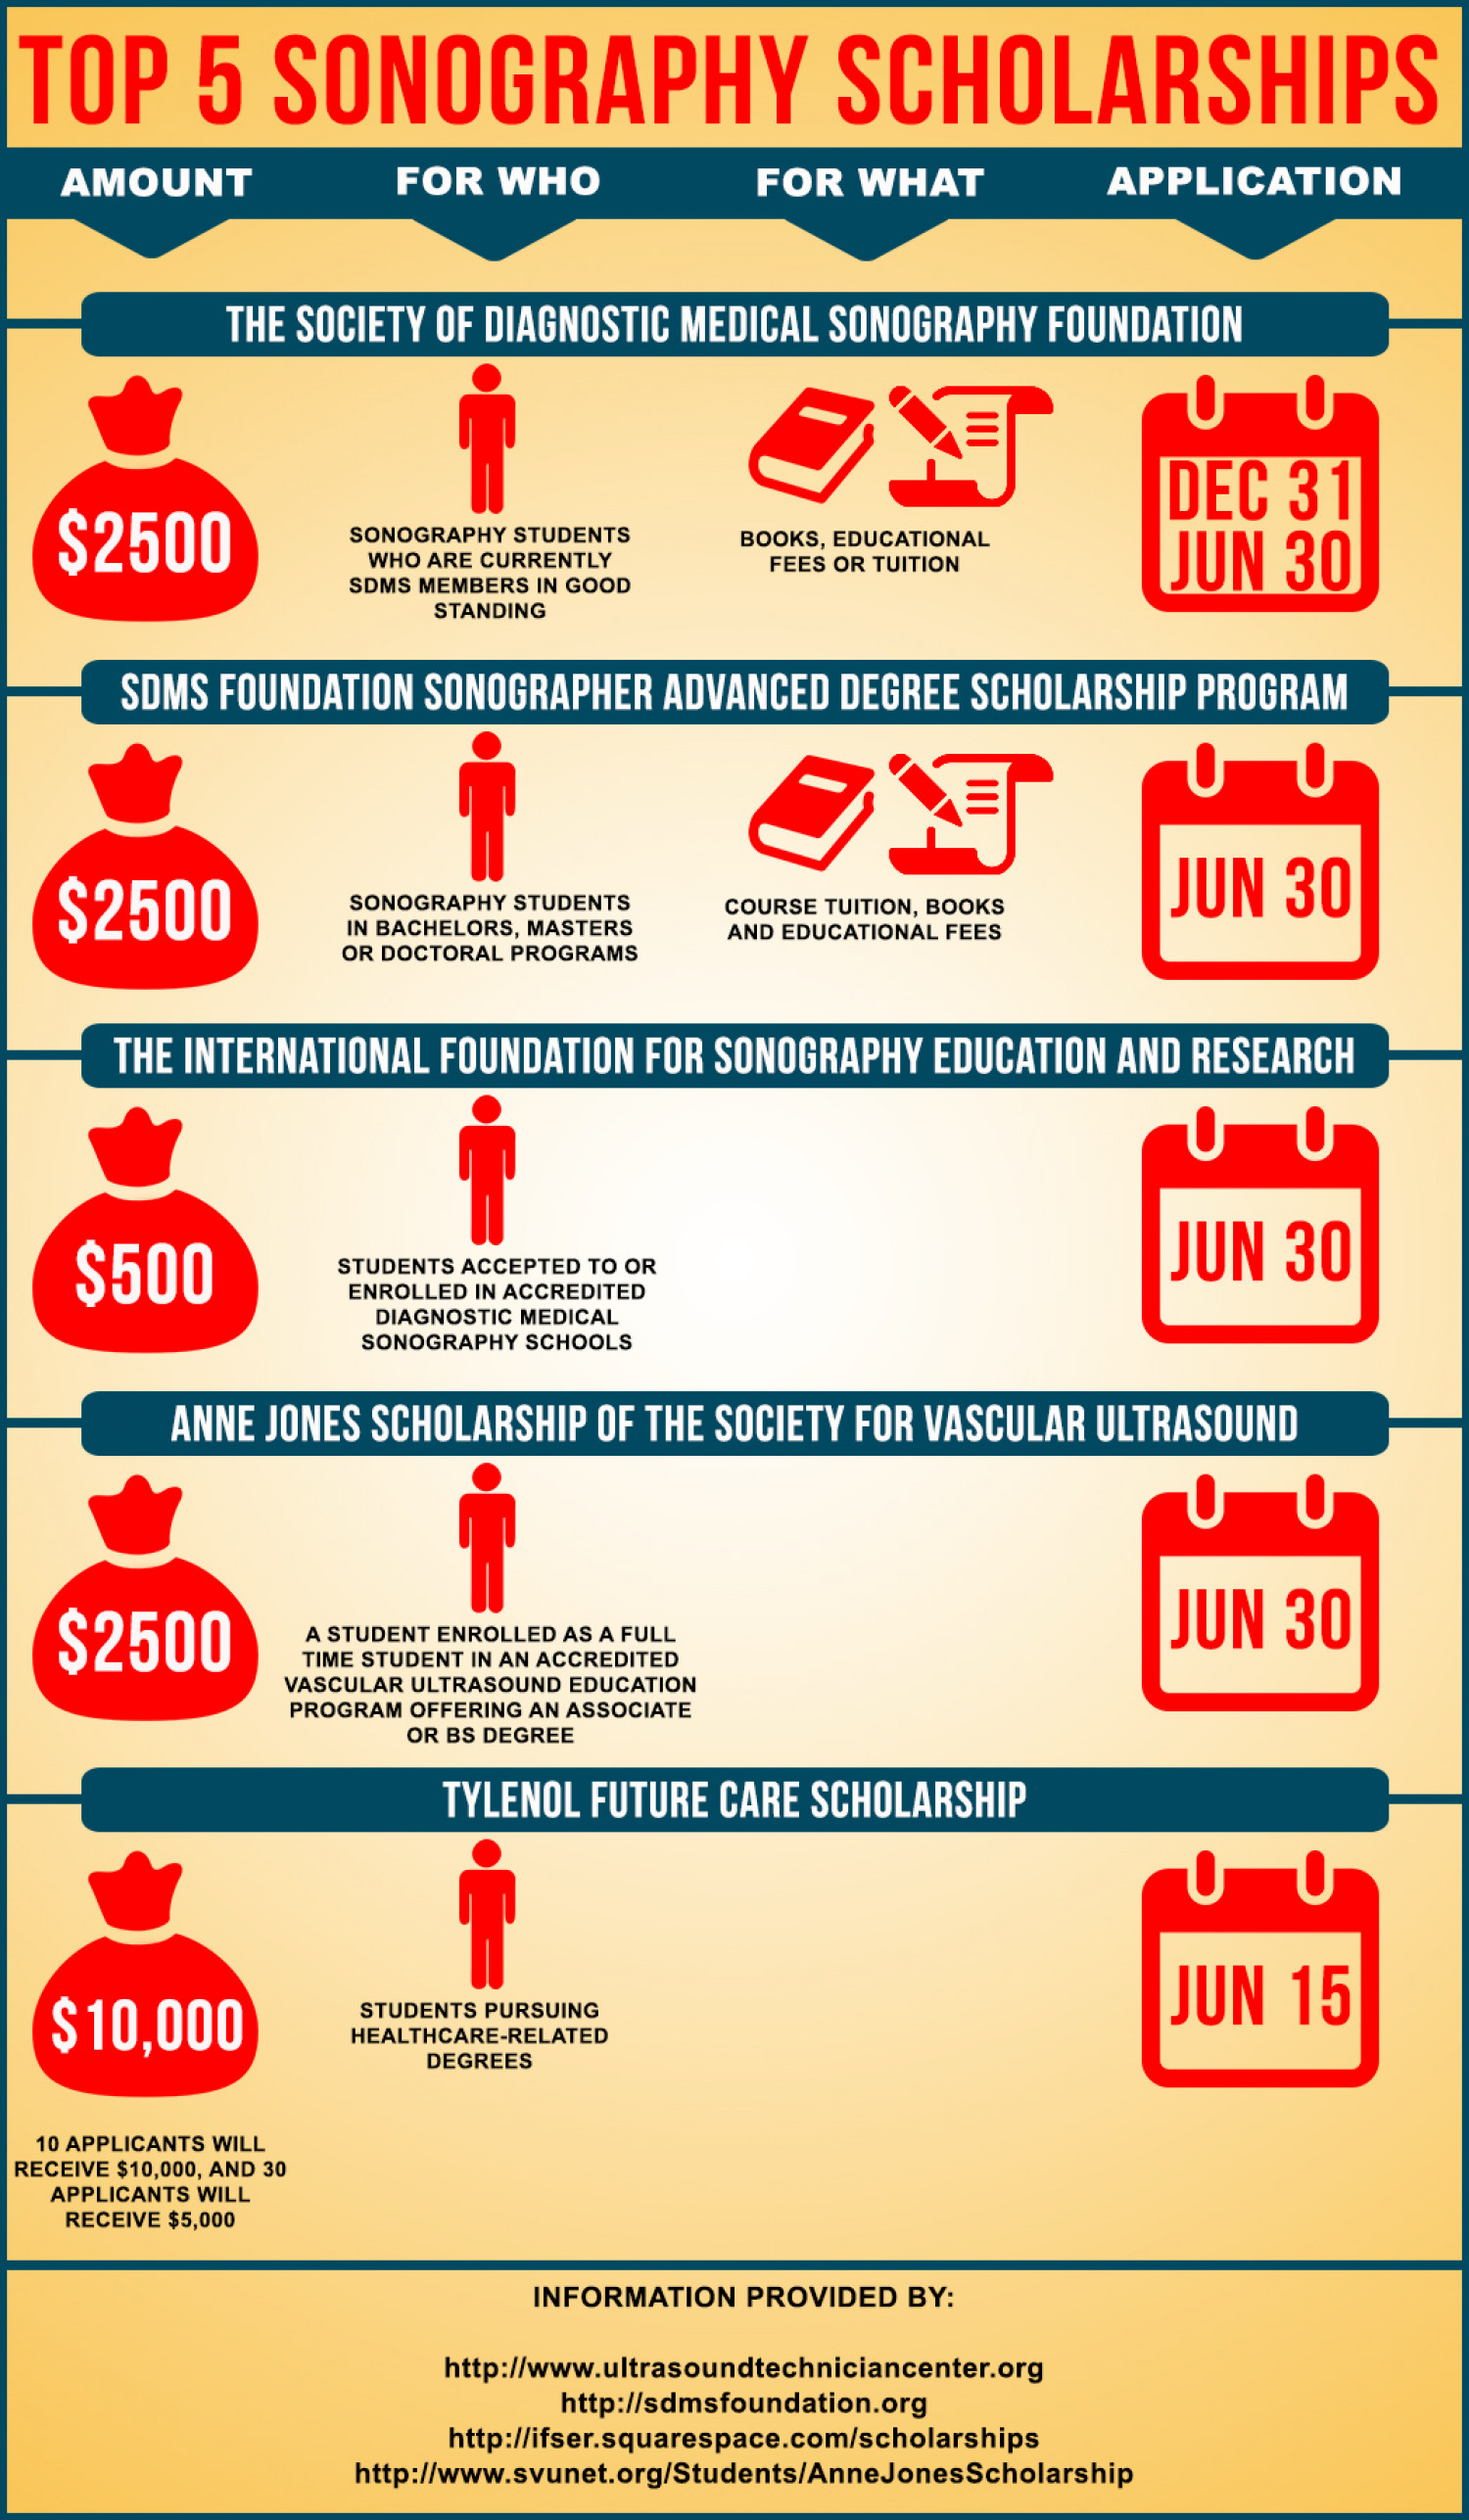 Top 5 Sonography Scholarships Infographic